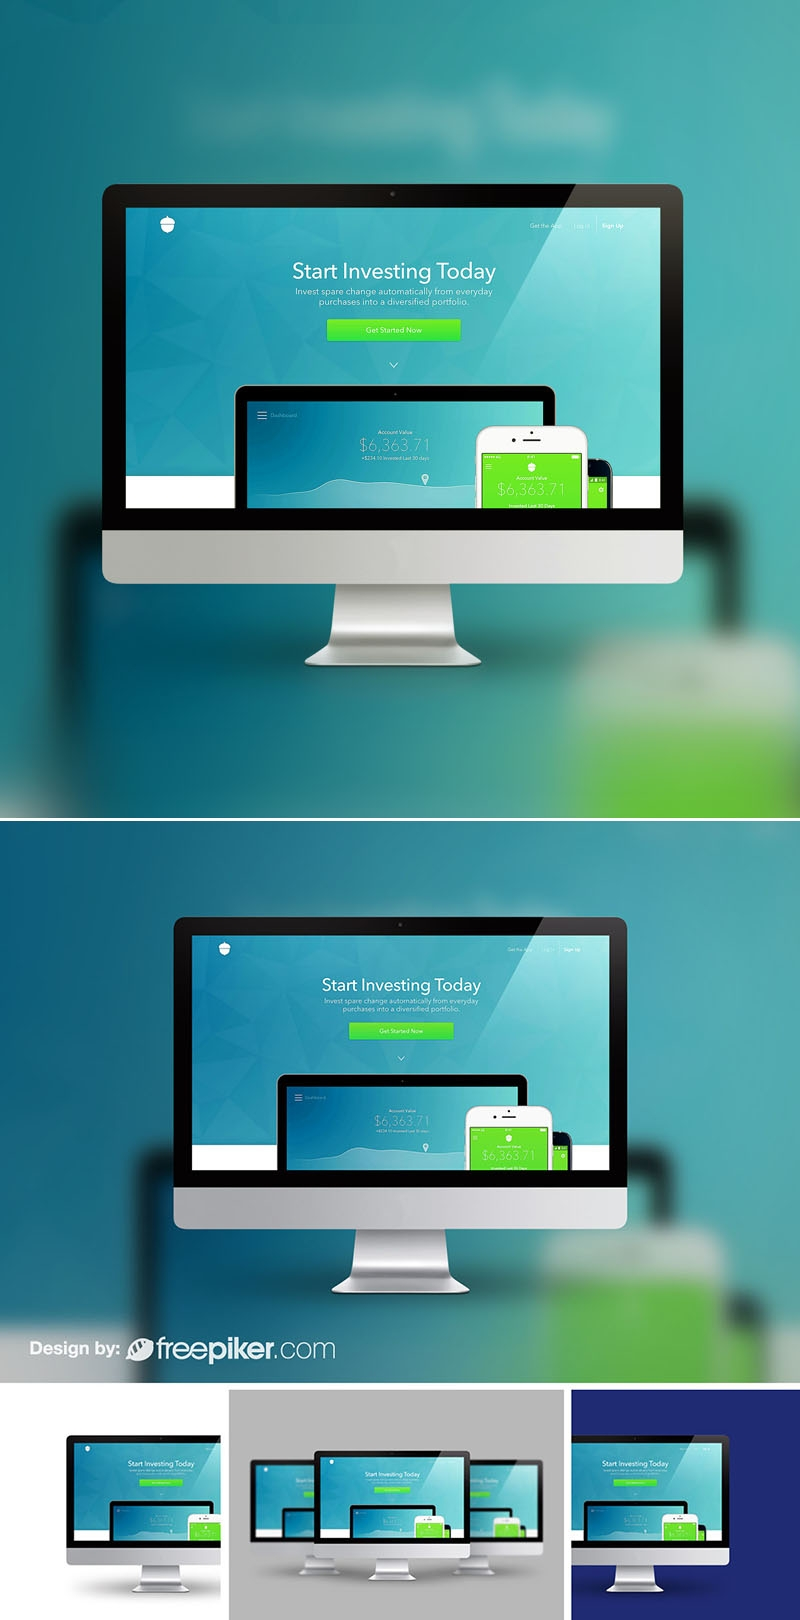 Responsive Desktop Device iMac Screen Mockup